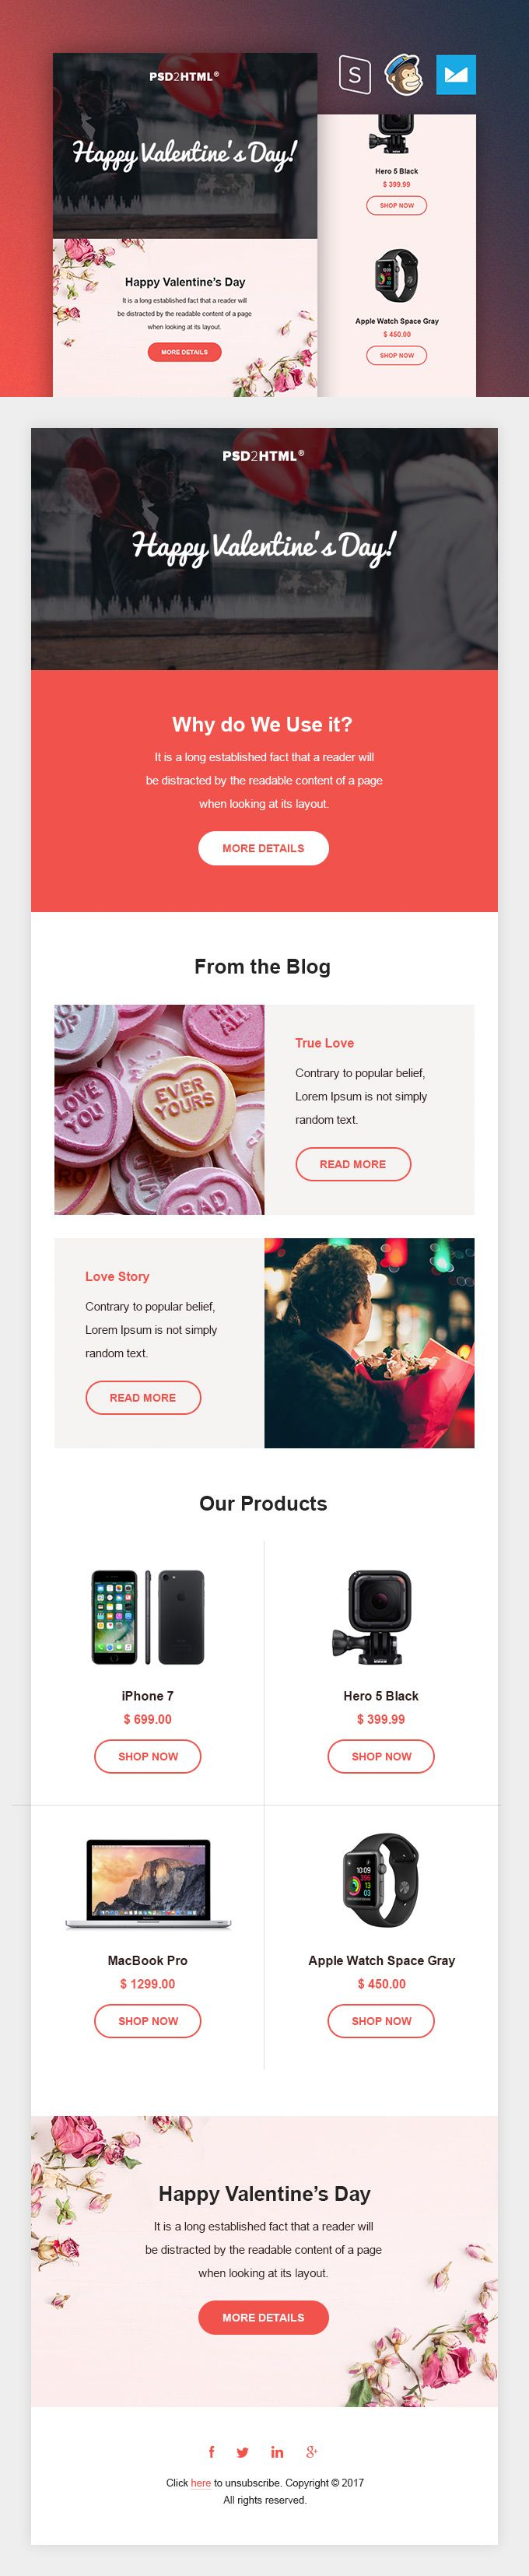 Valentine\'s day email template: free download | Coding | Pinterest ...